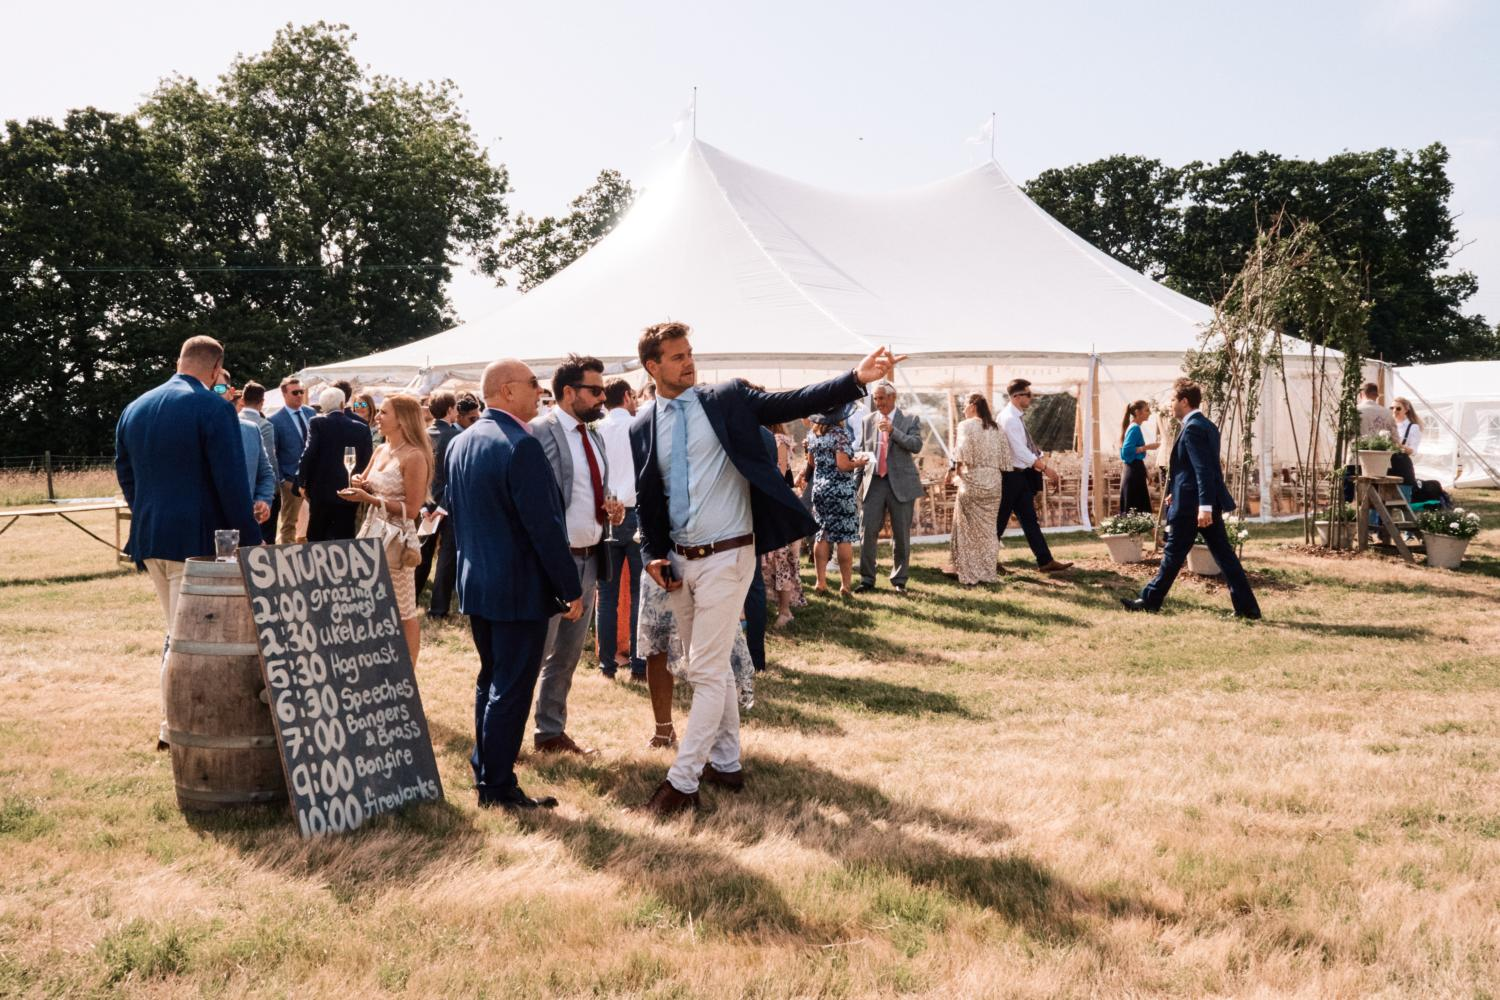 Guests mingle outside a marquee in a field